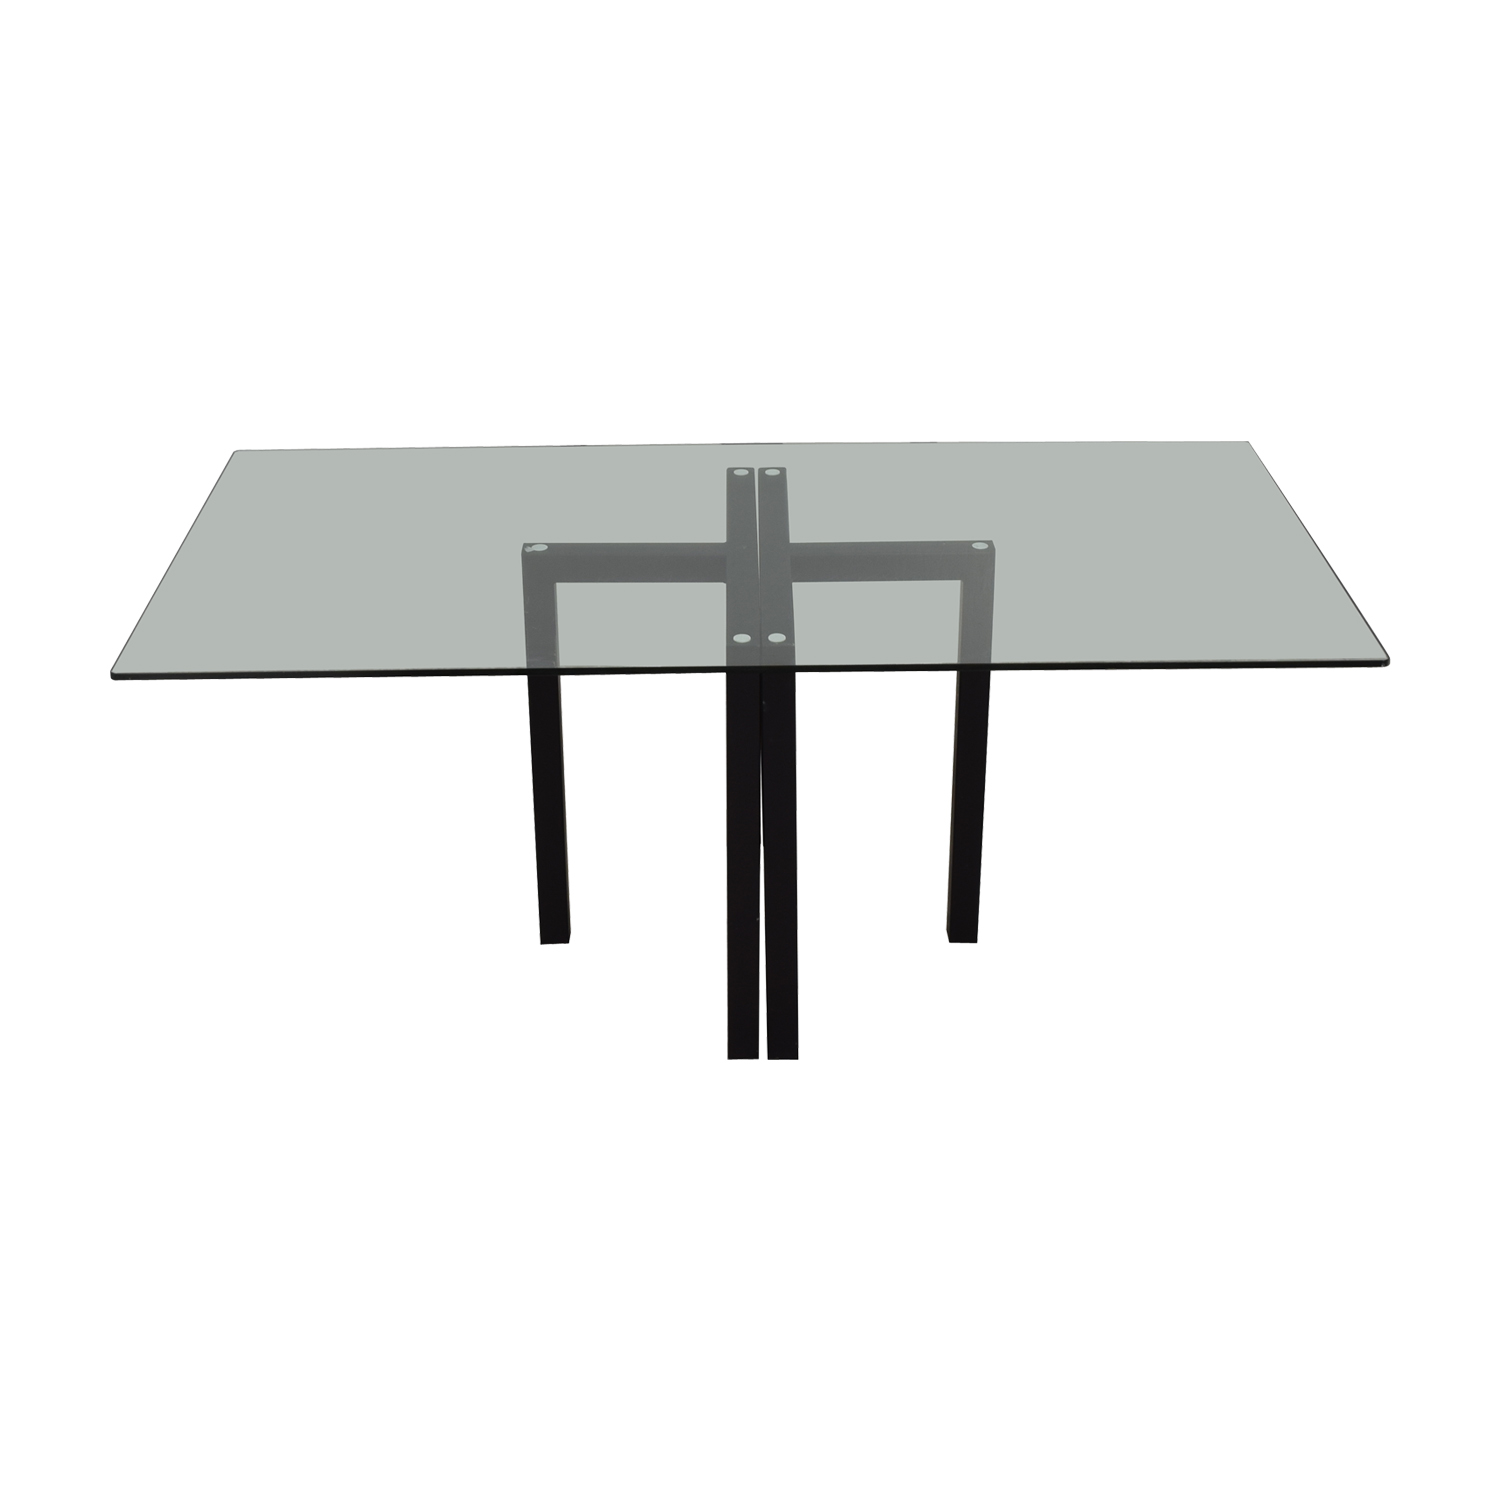 Crate & Barrel Crate & Barrel Glass Dining Table or Desk dimensions